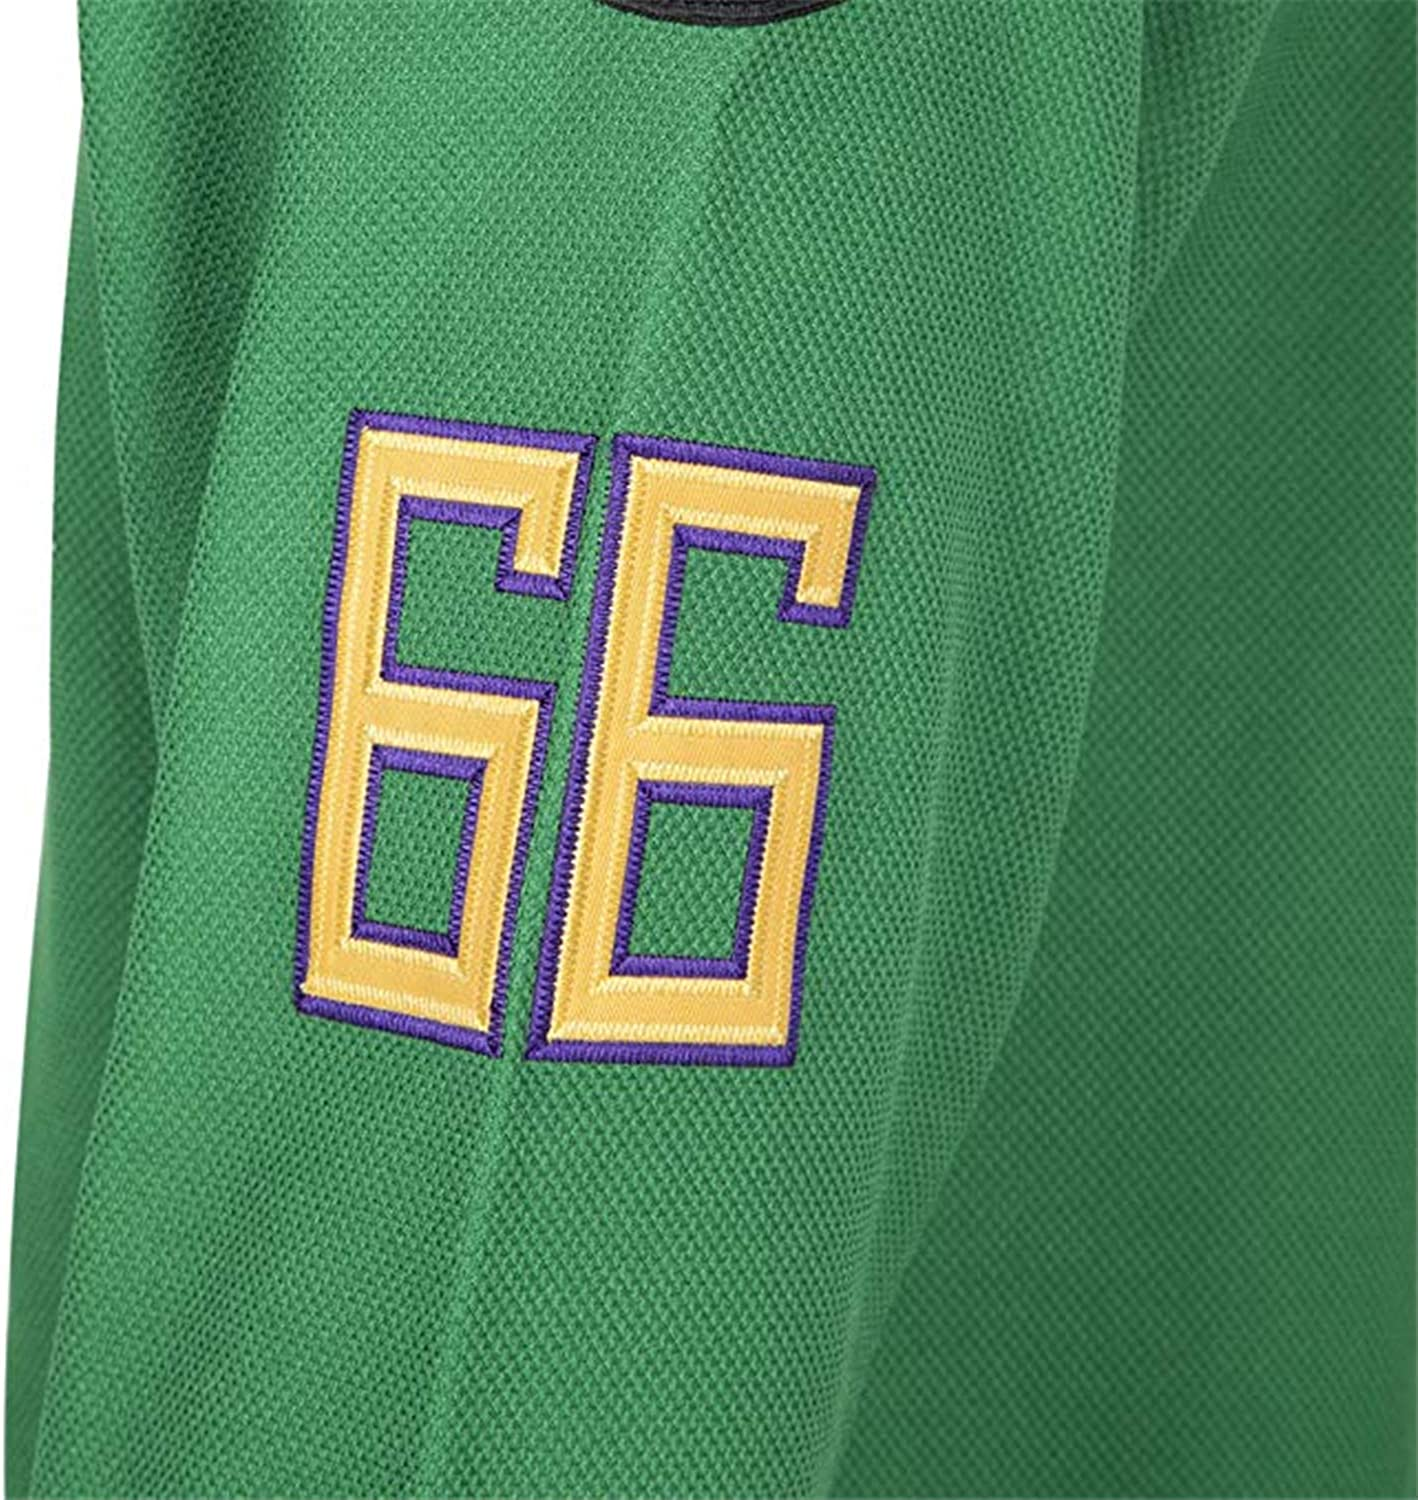 Bombay 66 The Mighty Ducks Jersey S-XXXL Green White 90S Hip Hop Clothing for Party Stitched Letters and Numbers